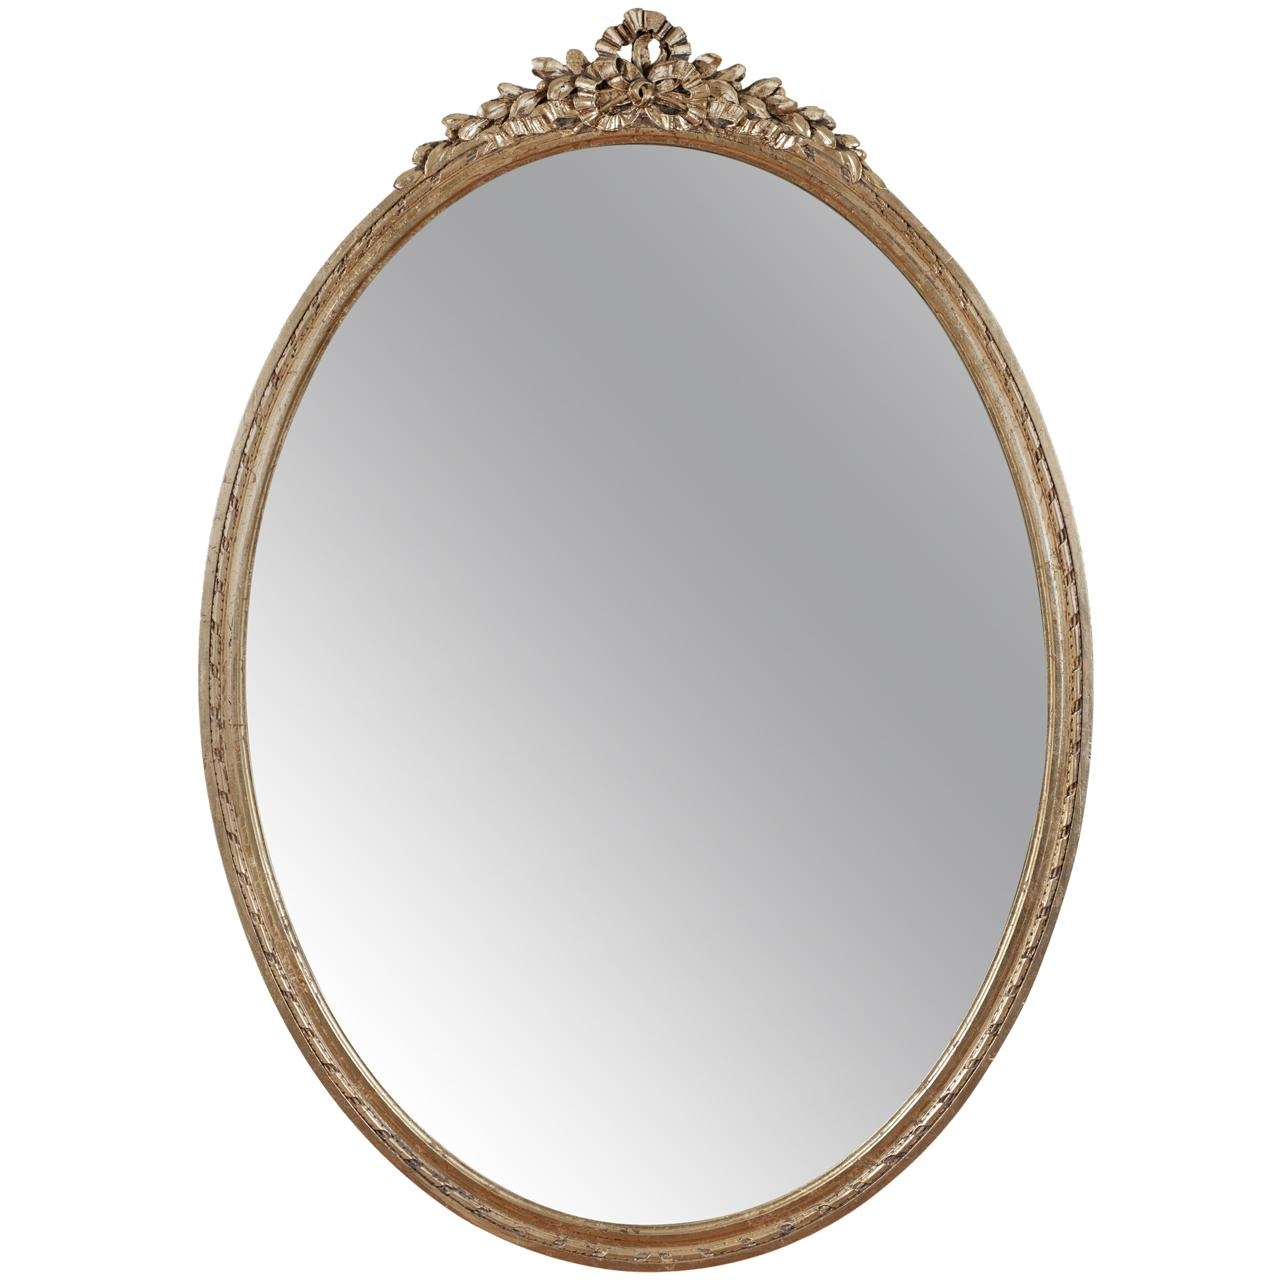 Accessories: Heavenly Image Of Accessories For Vintage Bedroom And Inside Gold Oval Mirrors (Image 2 of 20)